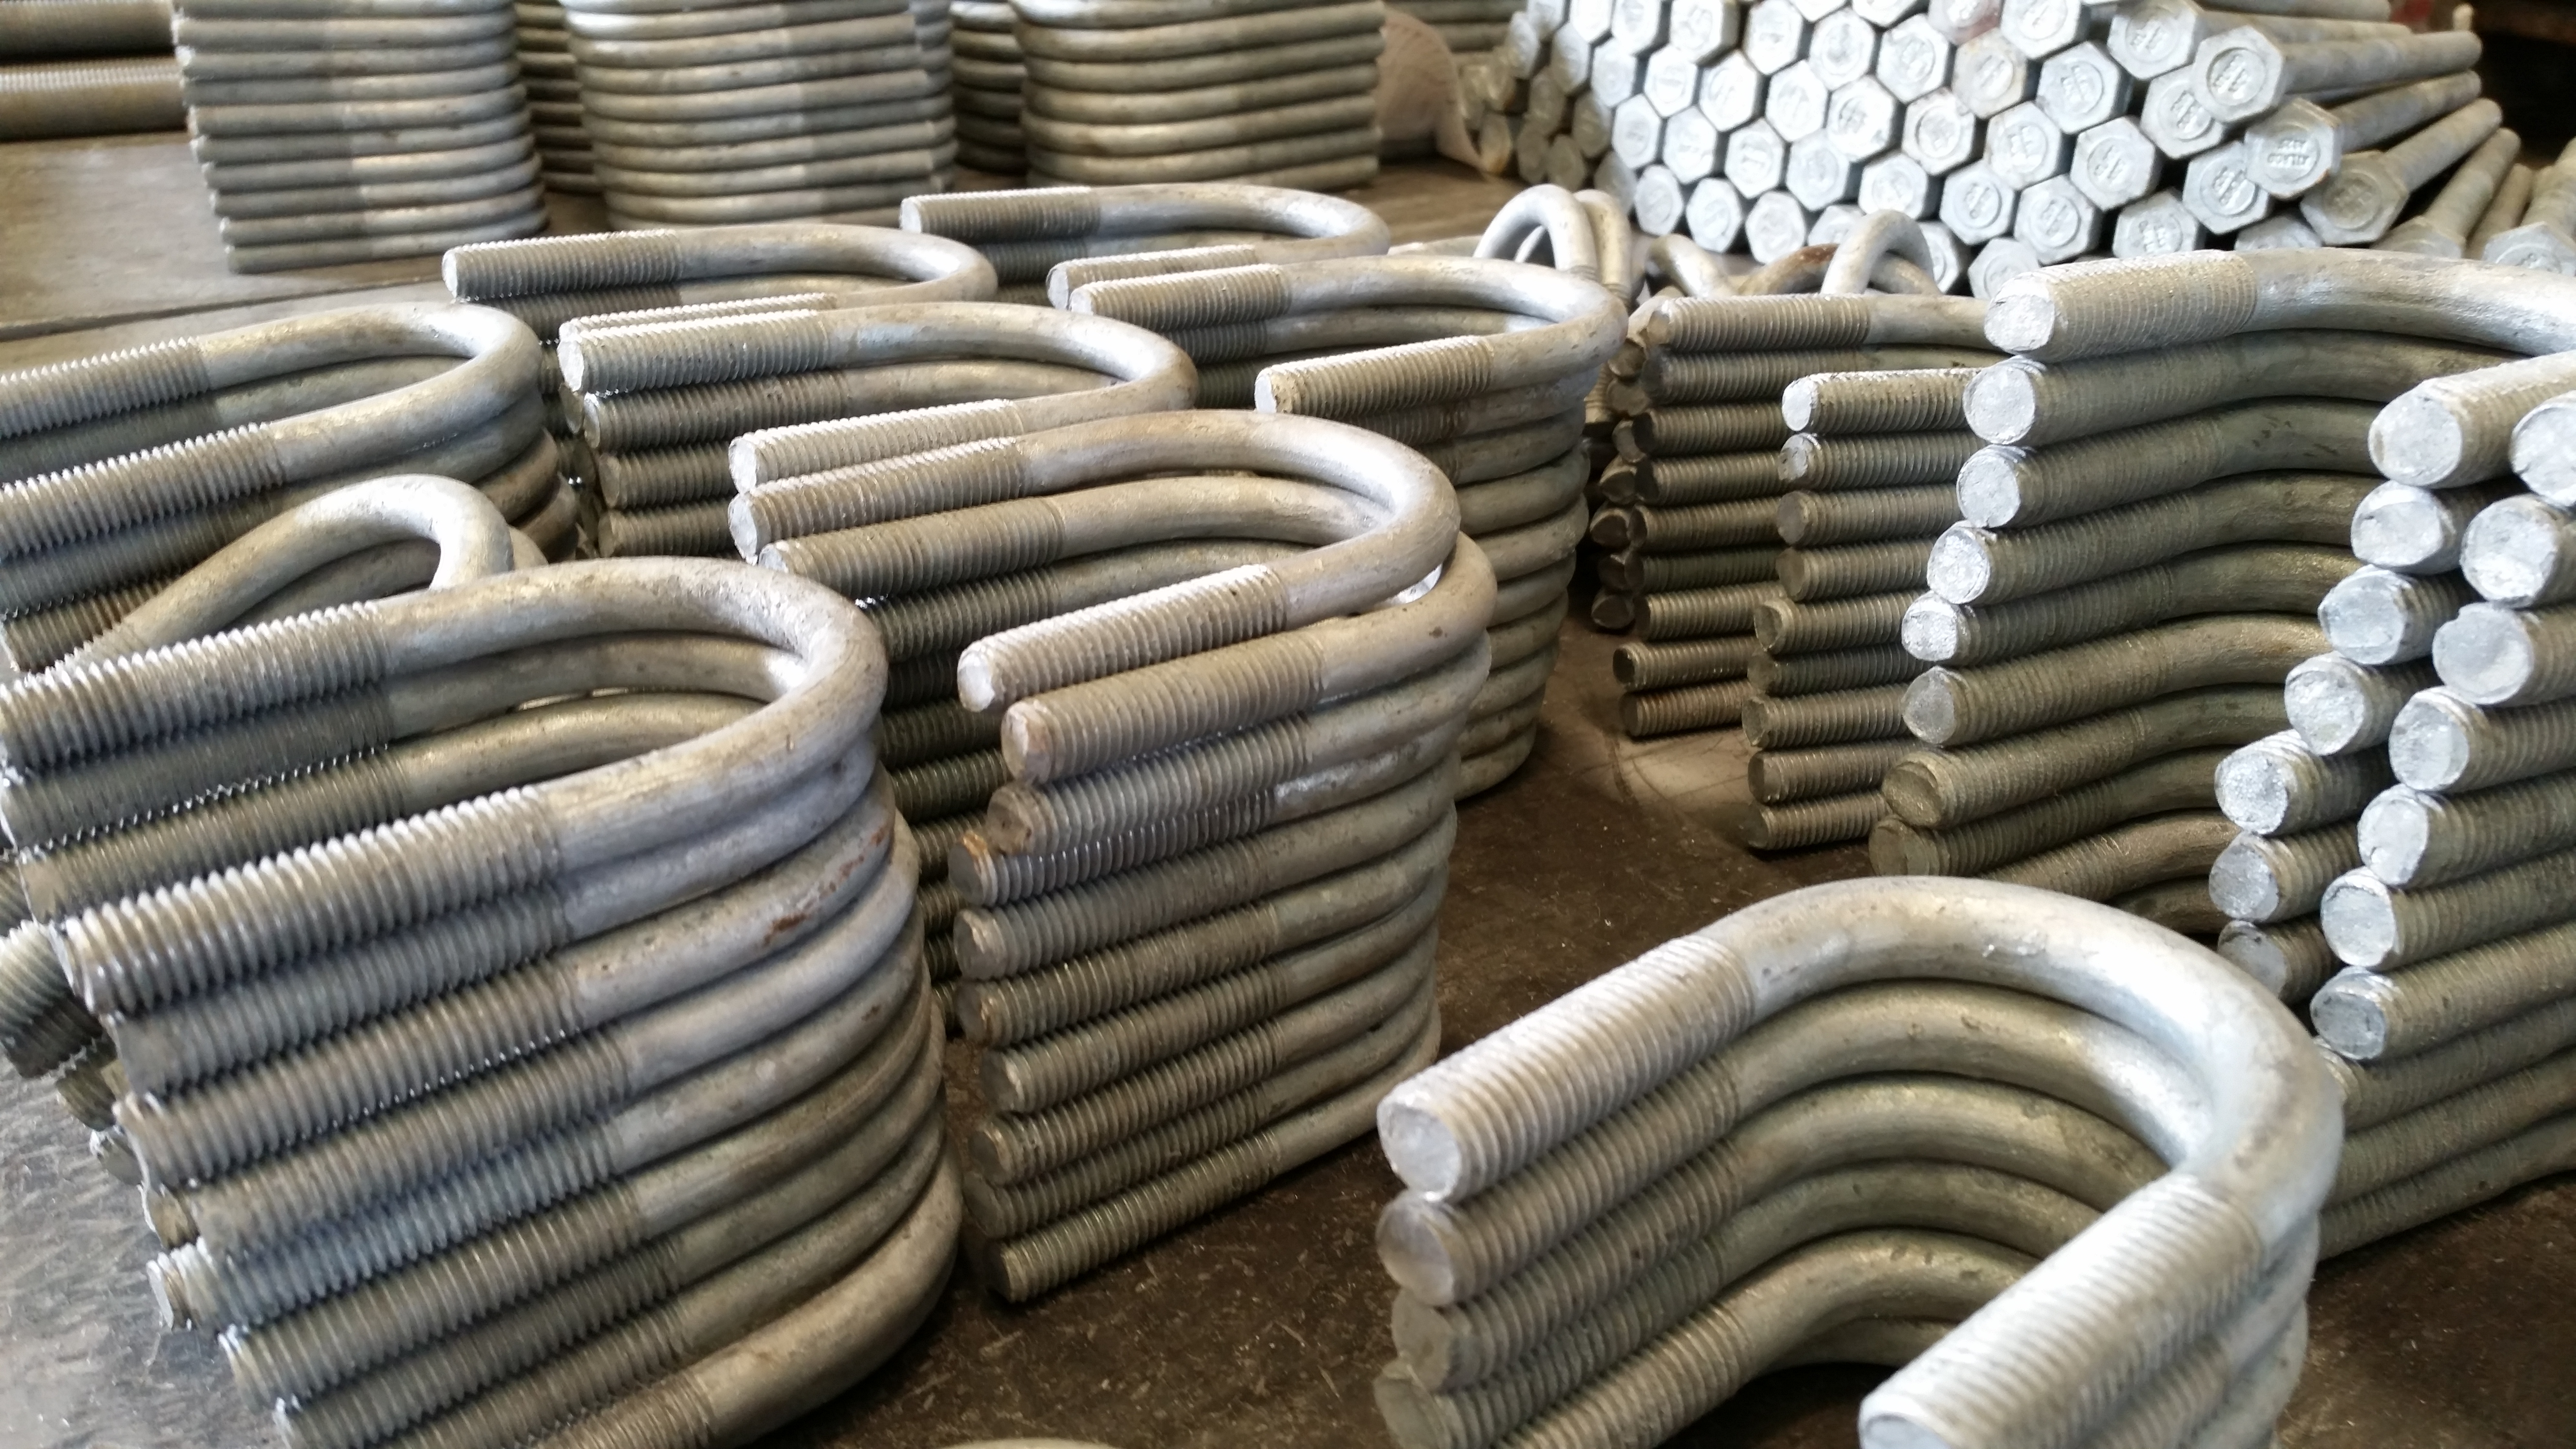 Hot Dipped Galvanizing Atlanta Rod Amp Manufacturing